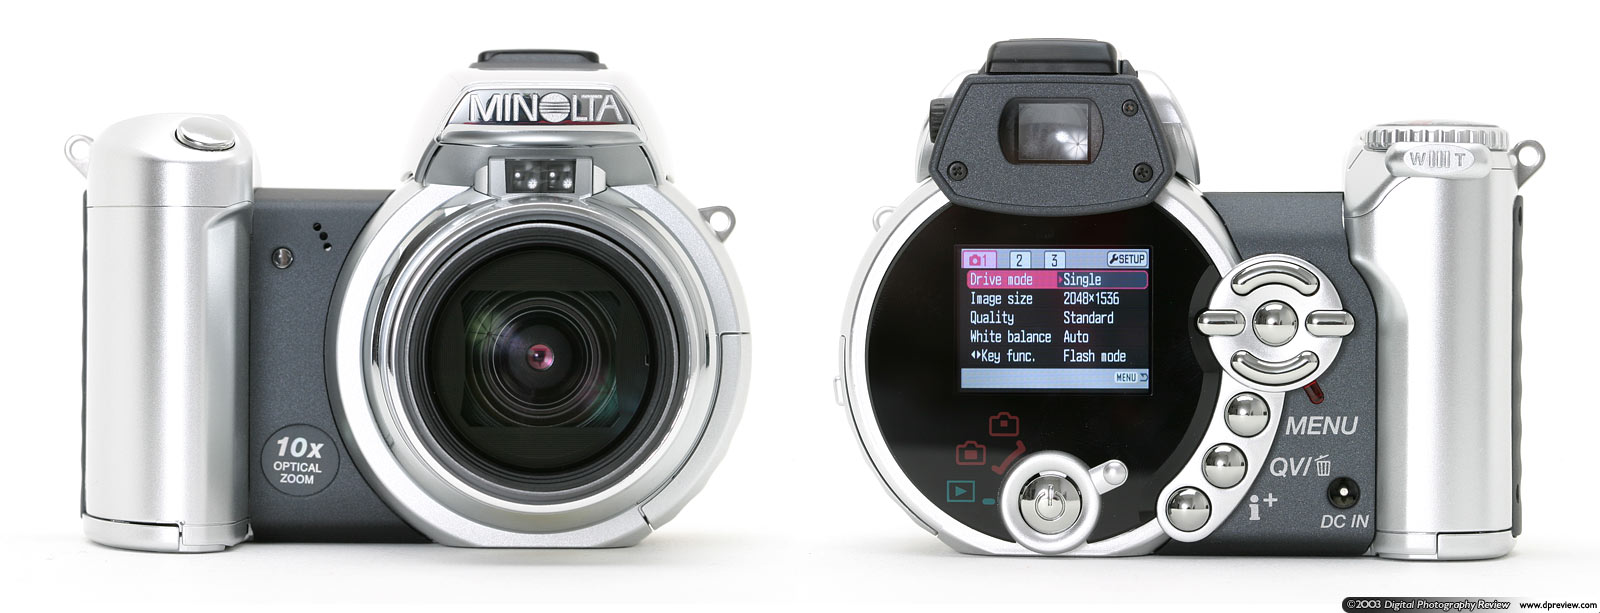 MINOLTA INTRODUCES A BREAKTHROUGH IN DIGITAL CAMERA DESIGN AND ENGINEERING